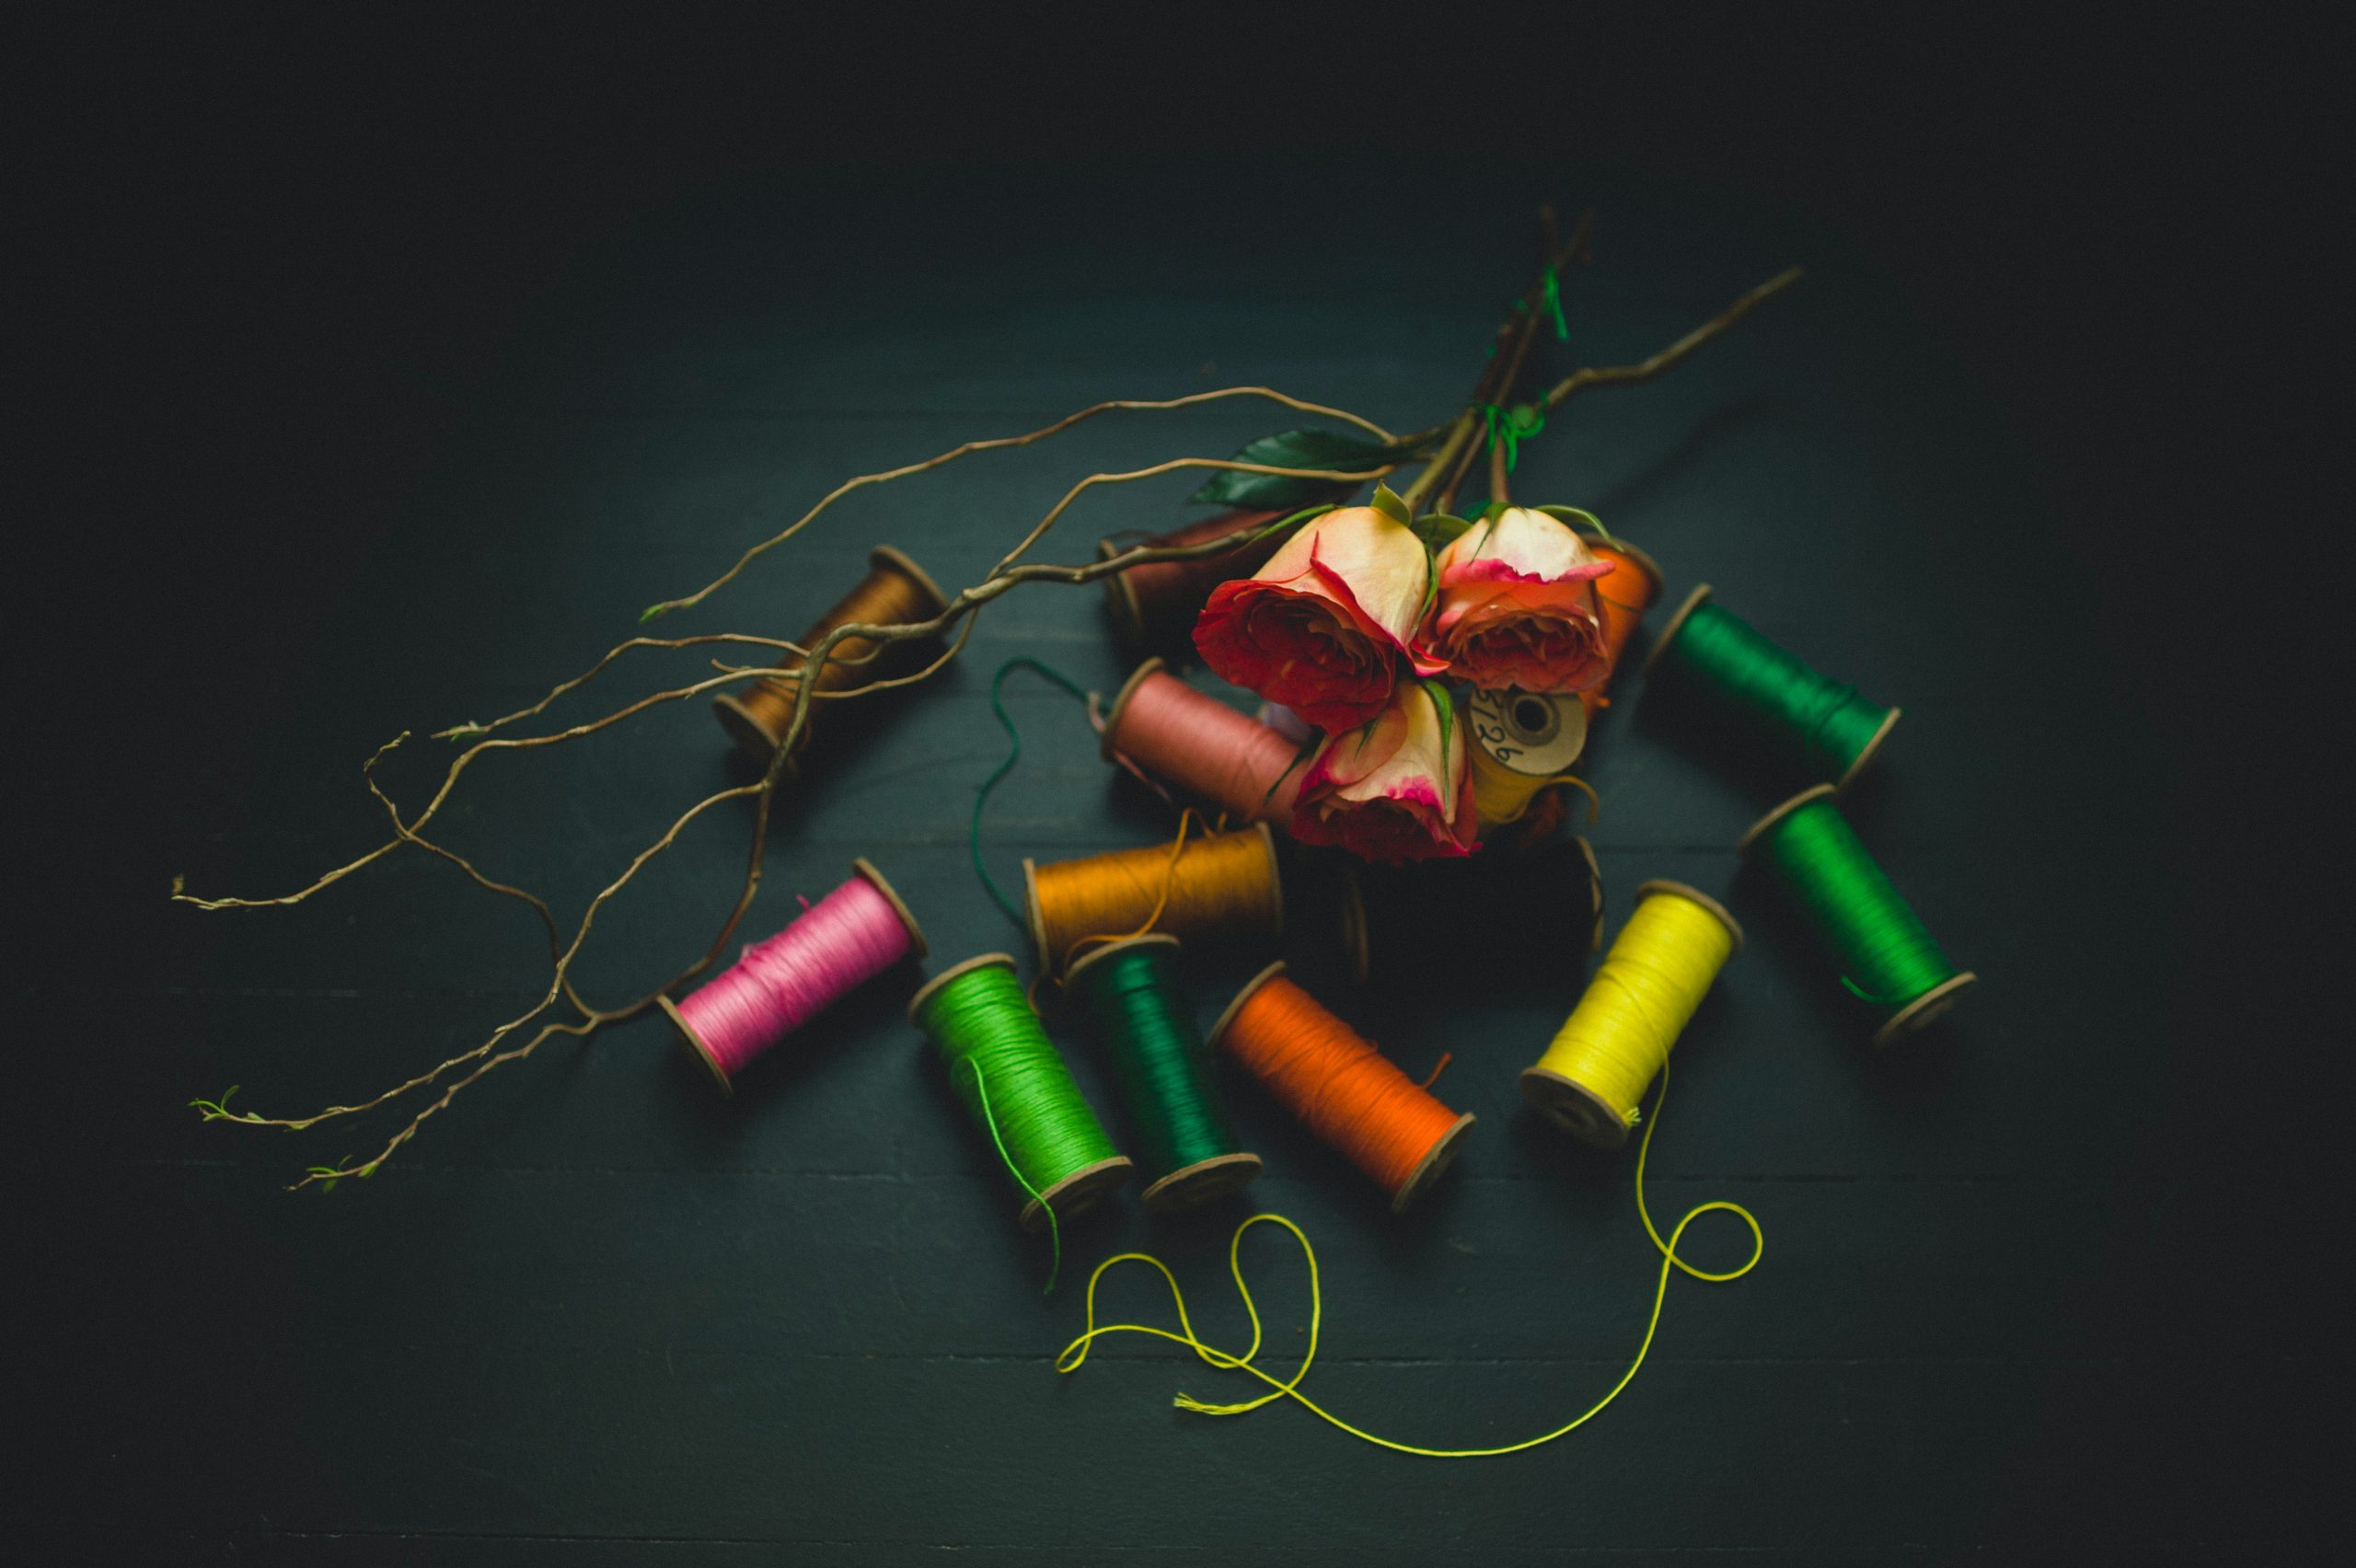 roses and thread